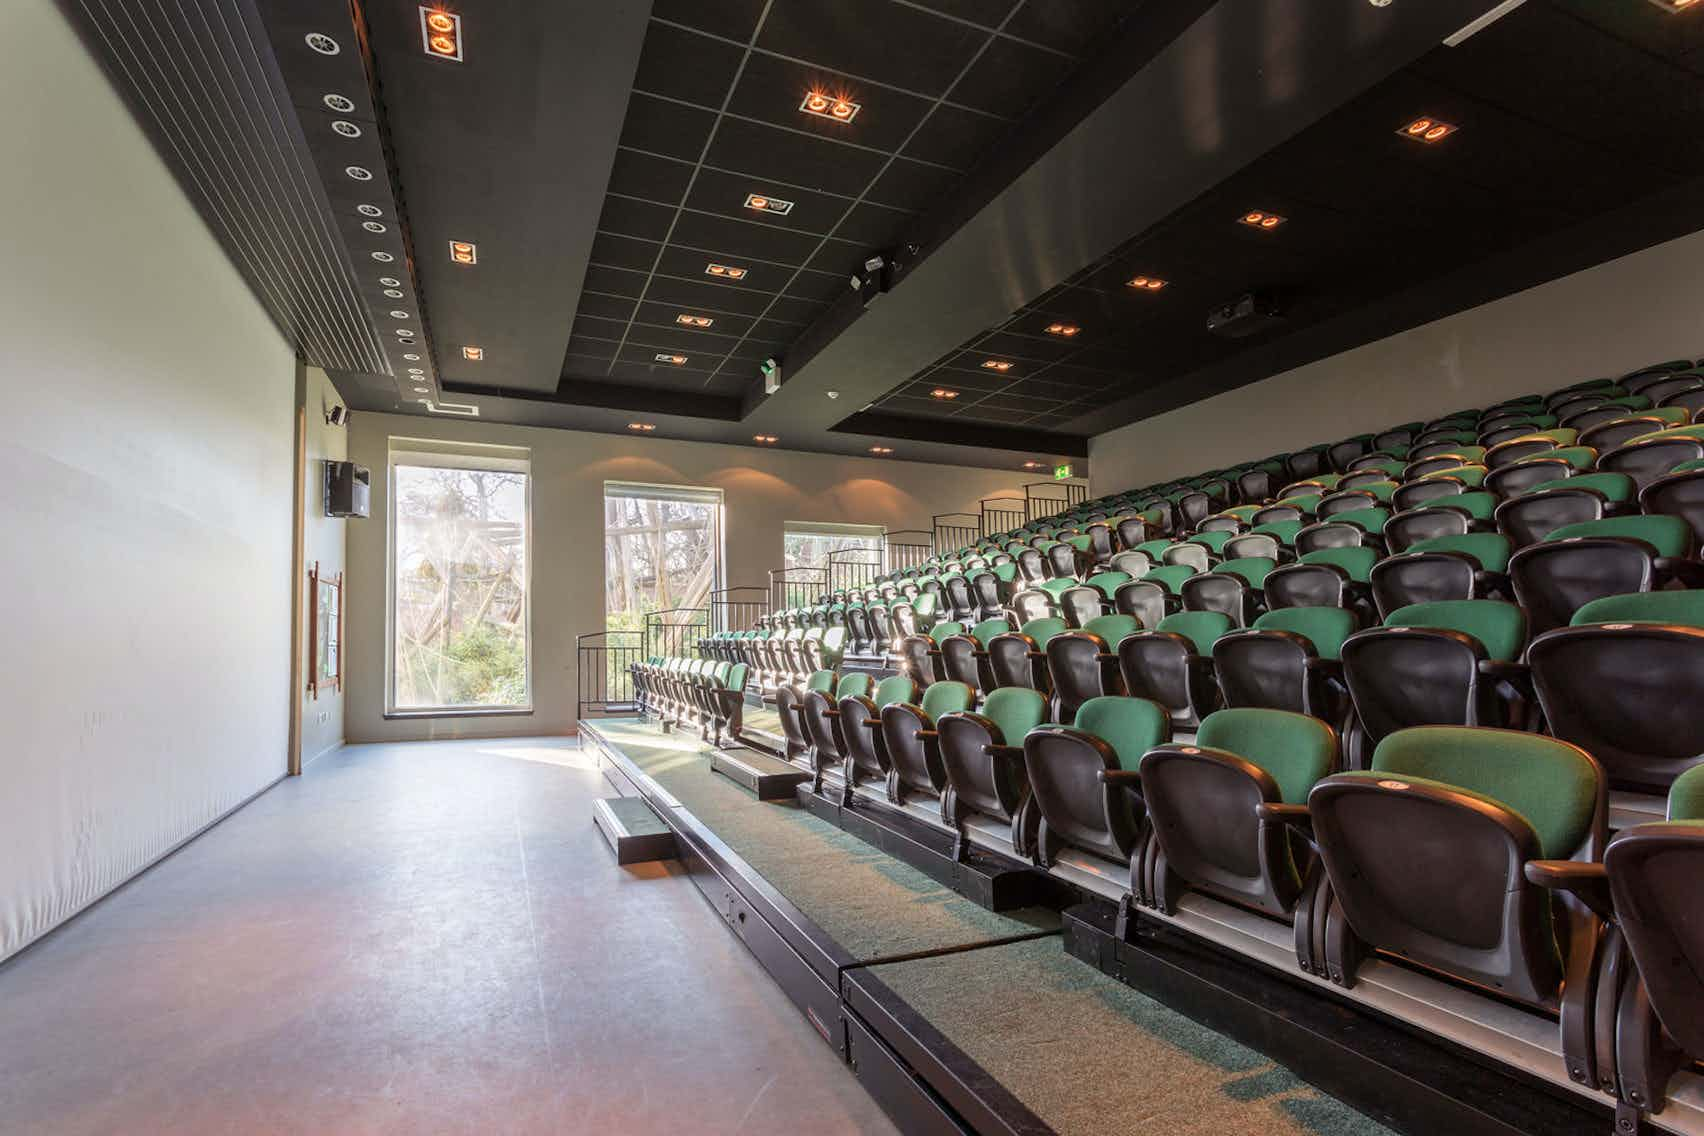 Education Lecture Theatre, Mansion House Edinburgh Zoo